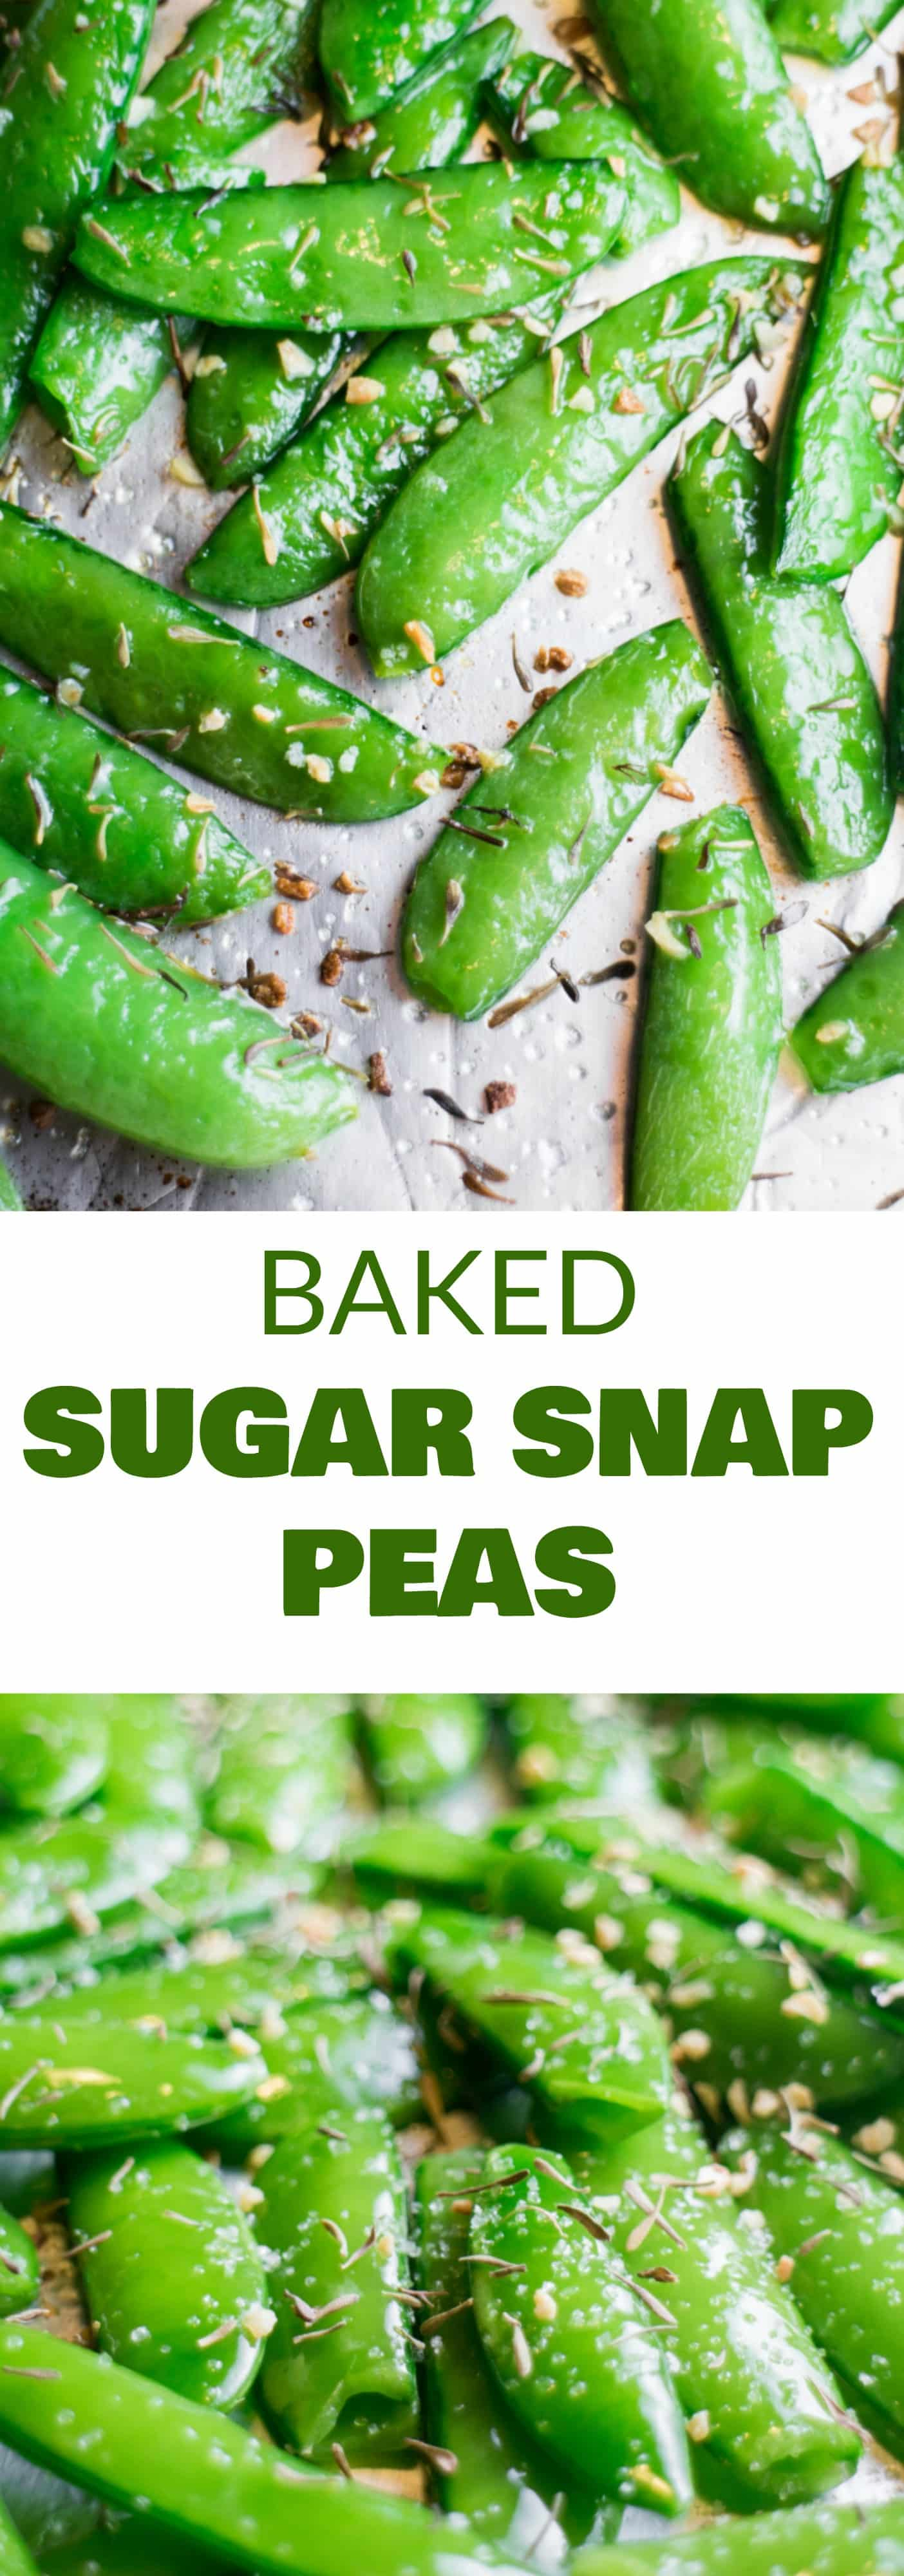 HEALTHY Roasted Sugar Snap Peas Recipe are easy to make and ready in 8 minutes!  Sprinkle with garlic, thyme and salt for a healthy snack!  Adults and kids both love this easy delicious pea recipe!